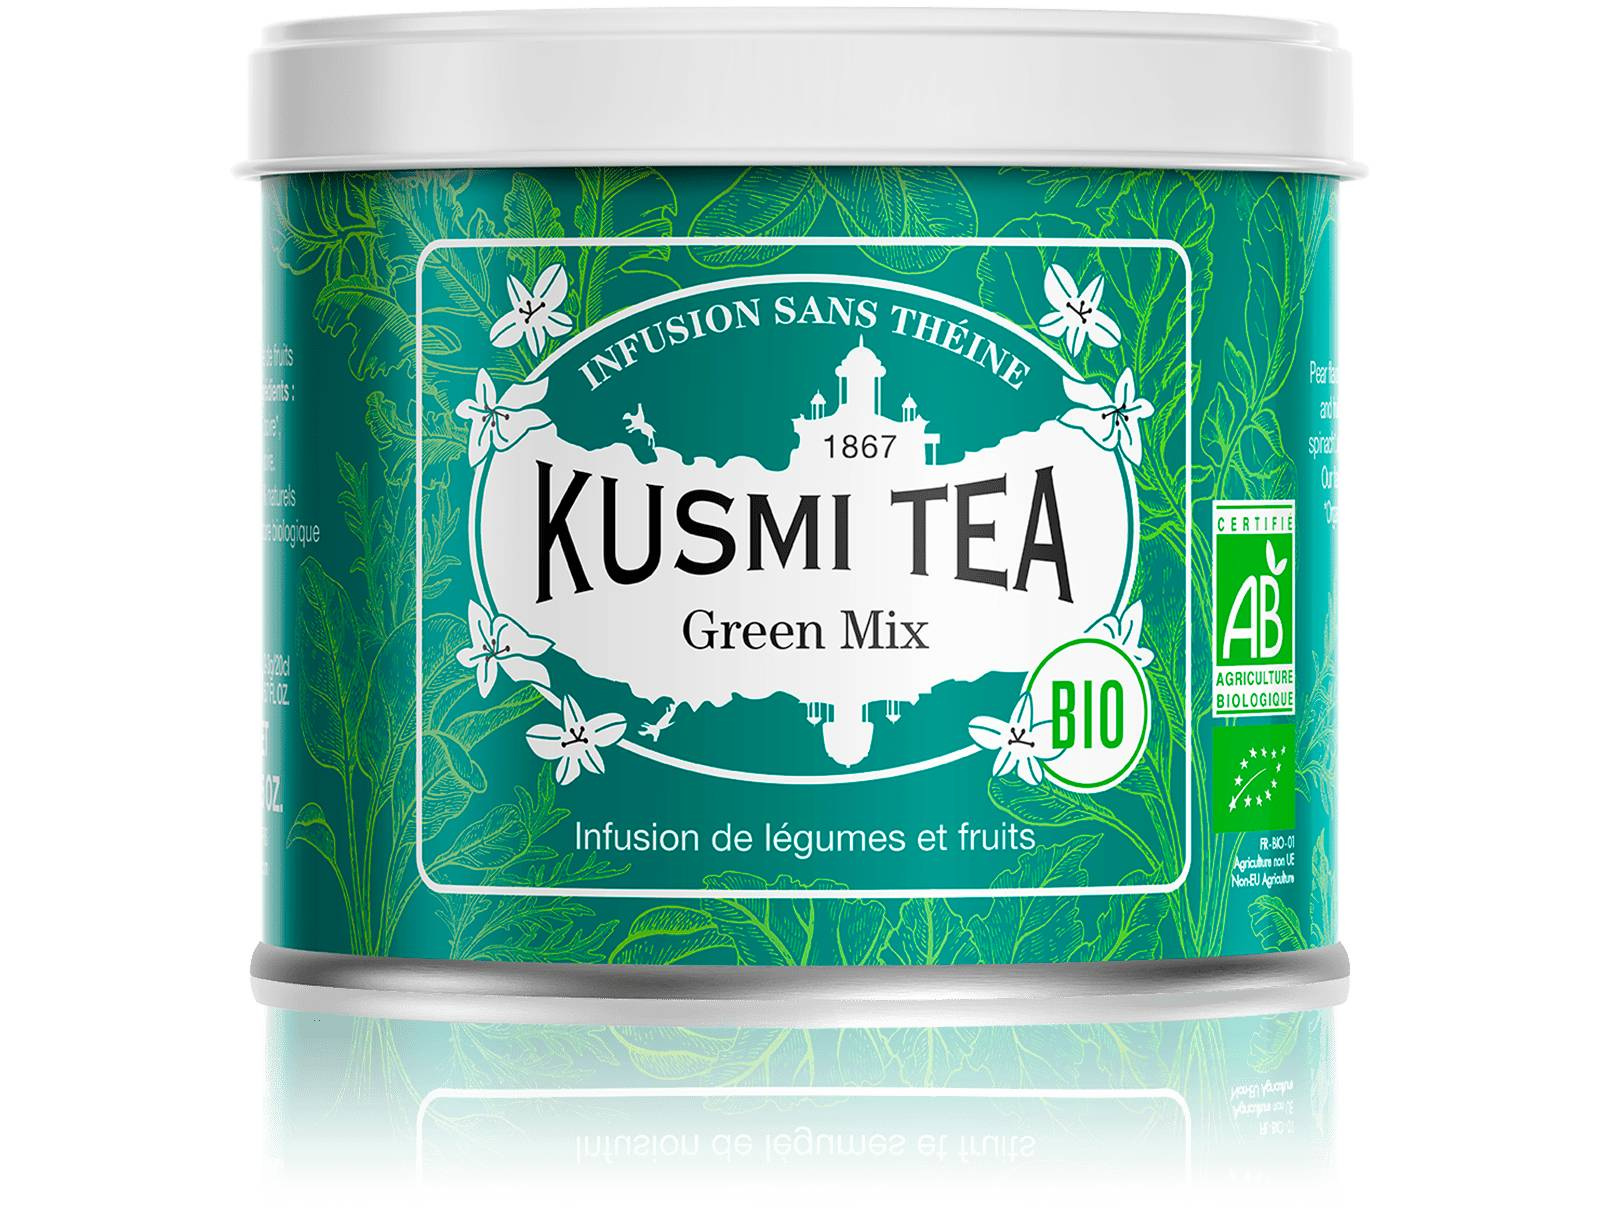 KUSMI TEA Green Mix Infusion bio - Légumes, fruits, poire Kusmi Tea